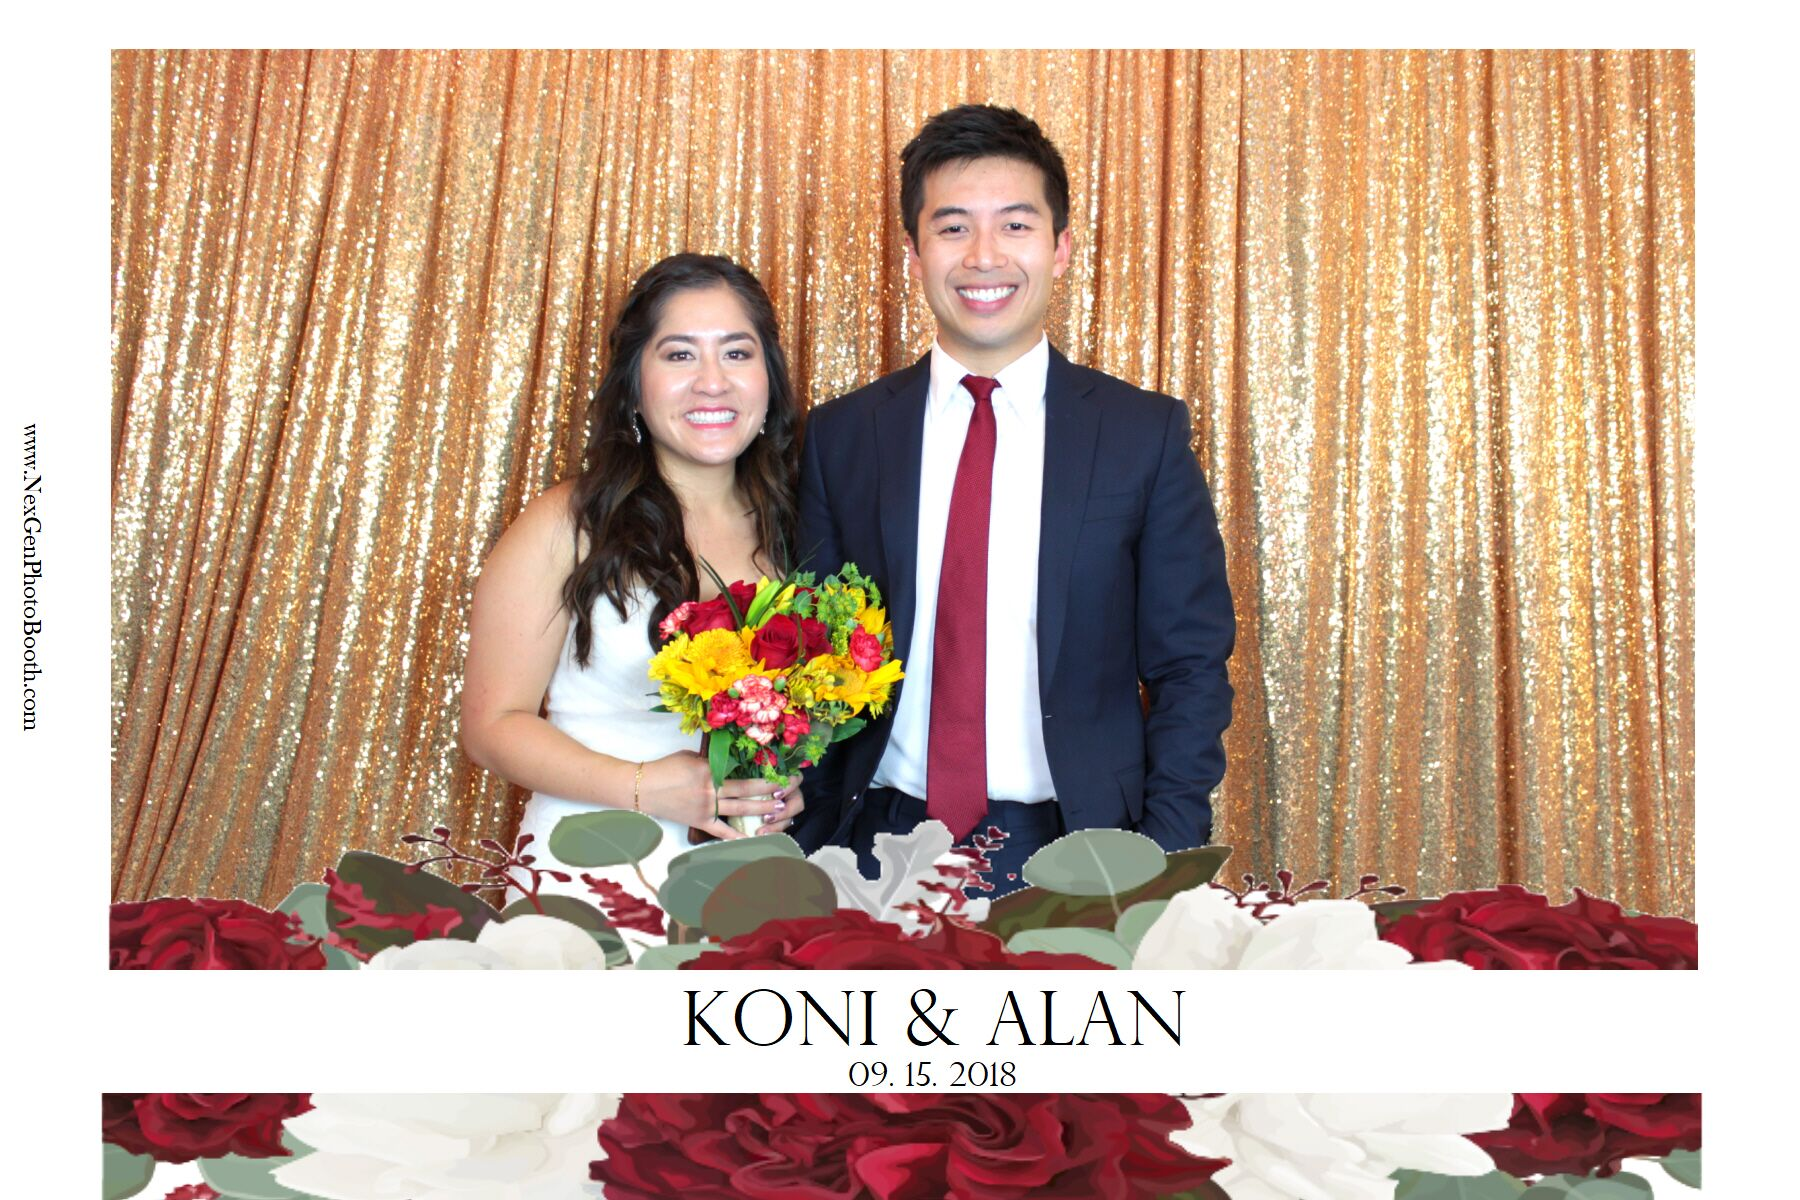 Photo Booth Rentals in Minneapolis, MN - The Knot